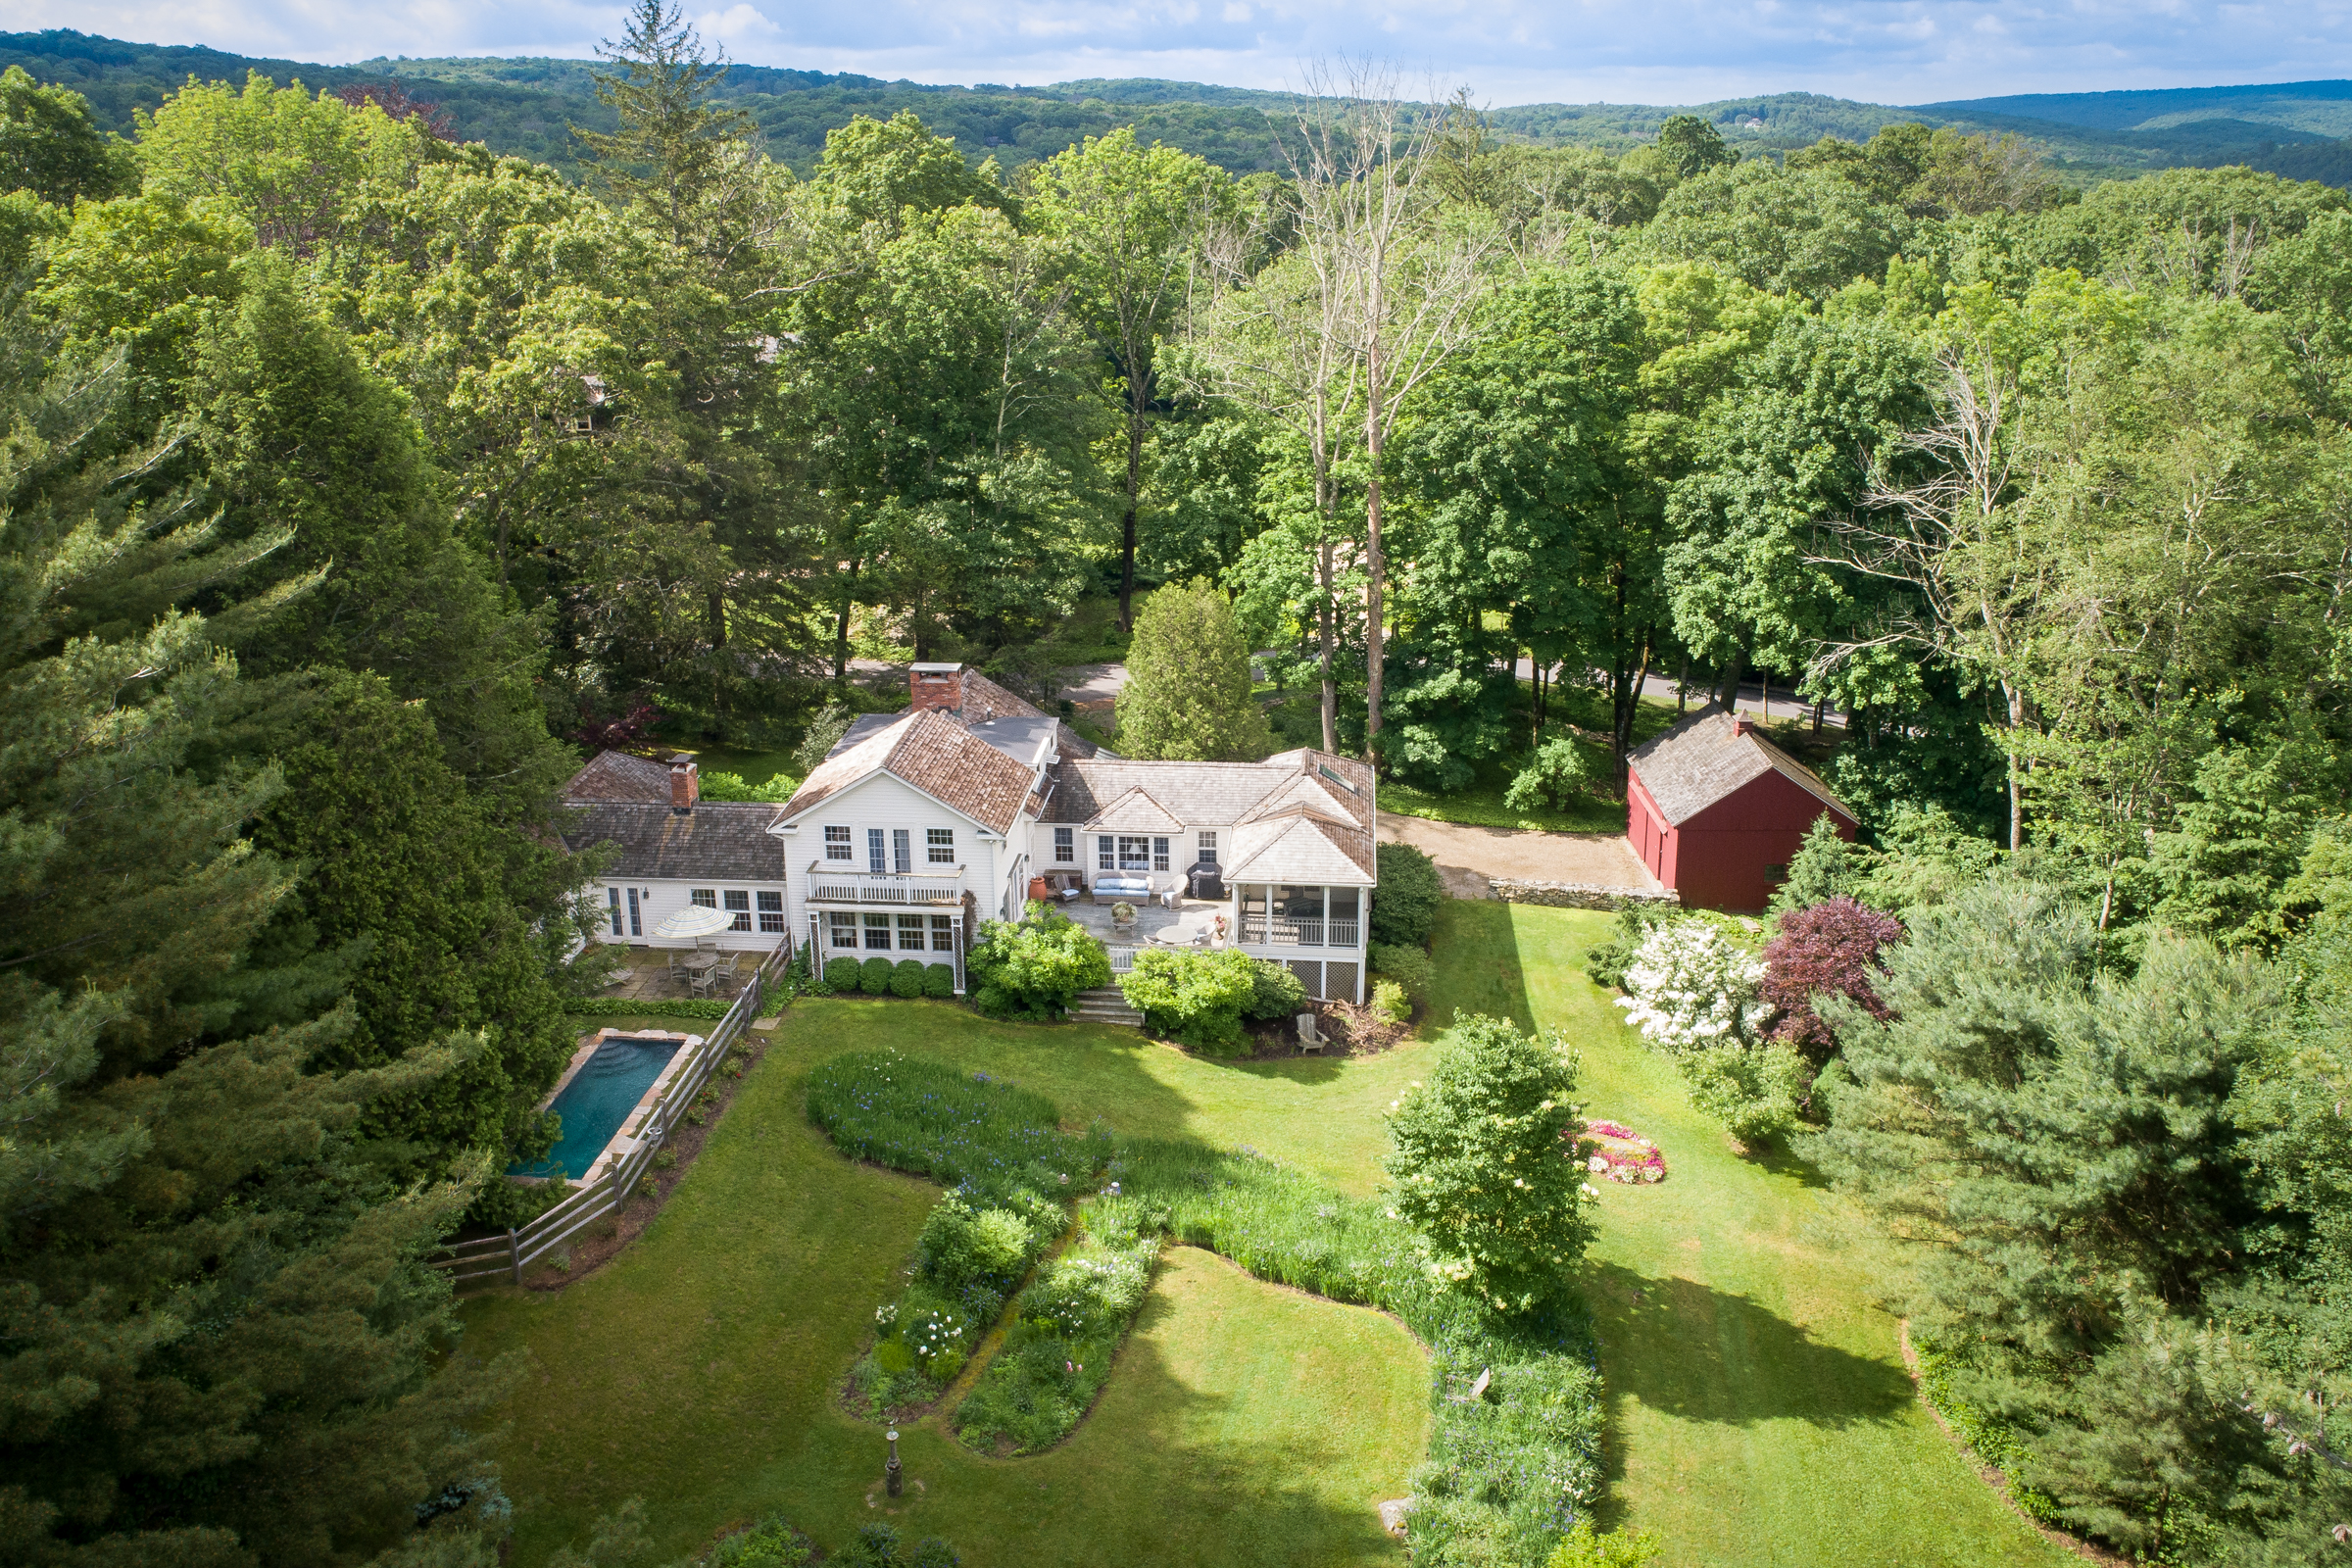 Casa unifamiliar en venta en/de 56 Ferry Bridge Road, Washington, Connecticut ,06793  , EUA